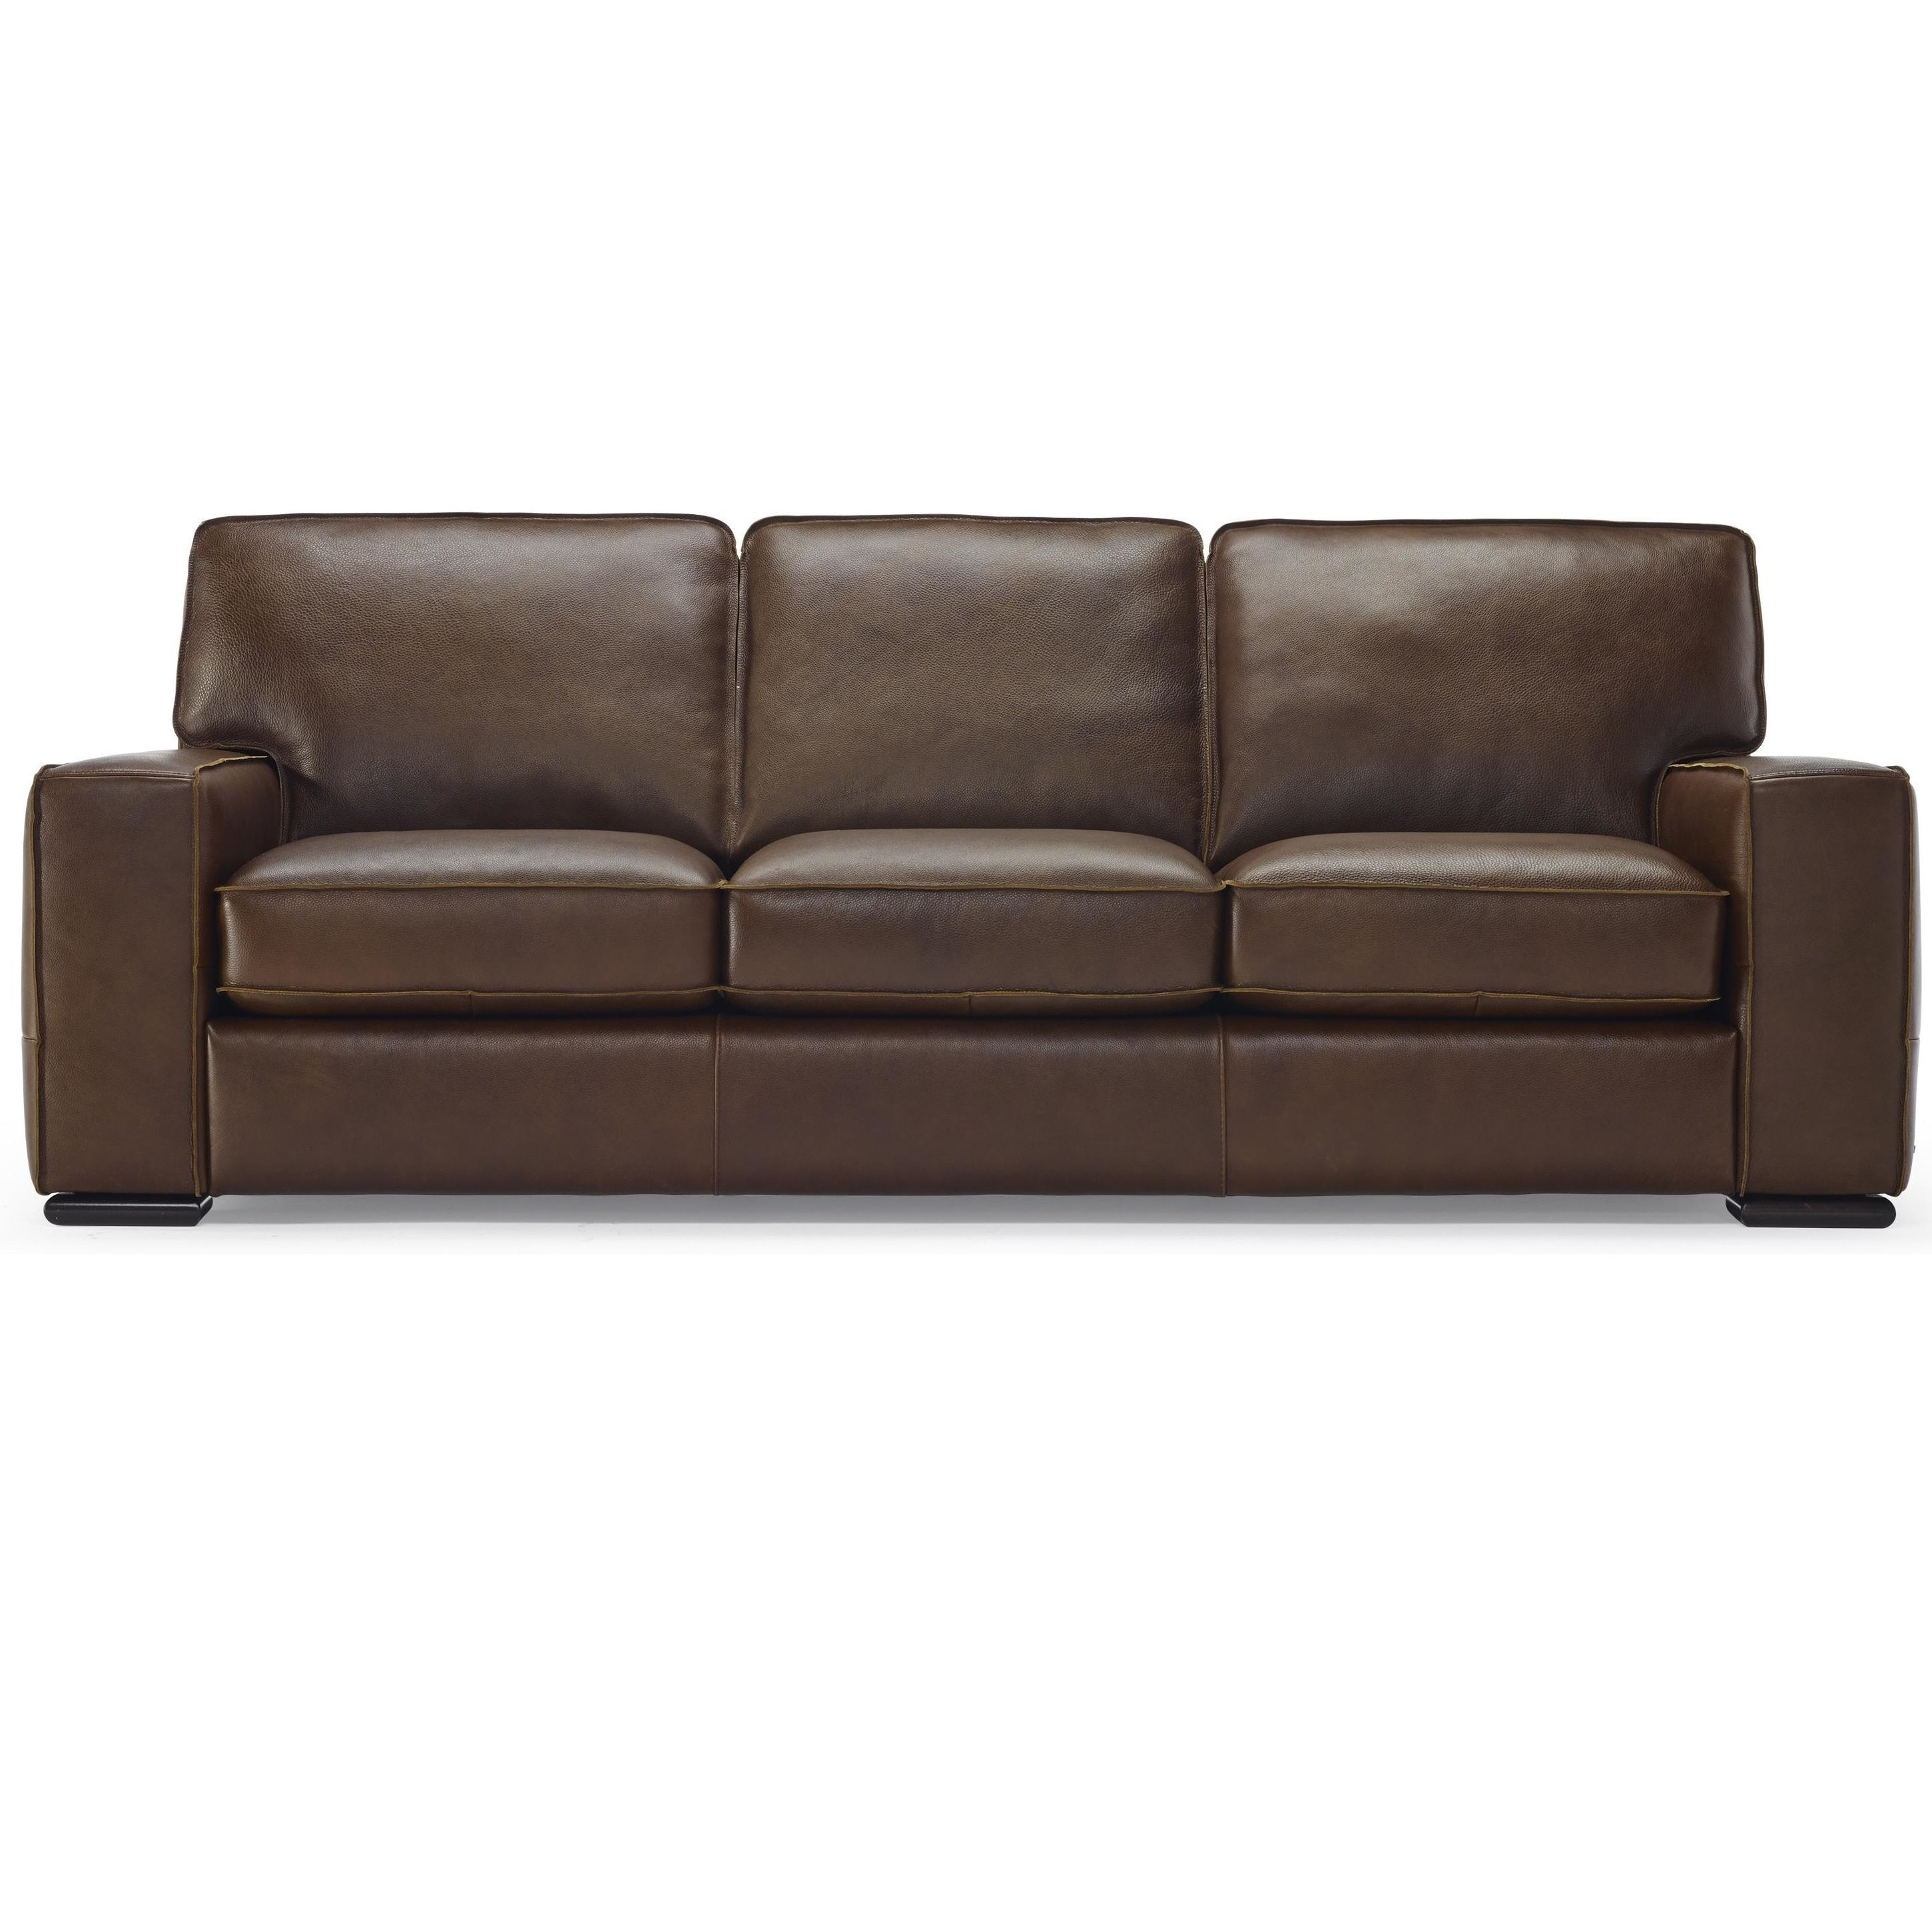 Chestnut Colored Leather Sofa 3 Seat Length Color Gradschoolfairs